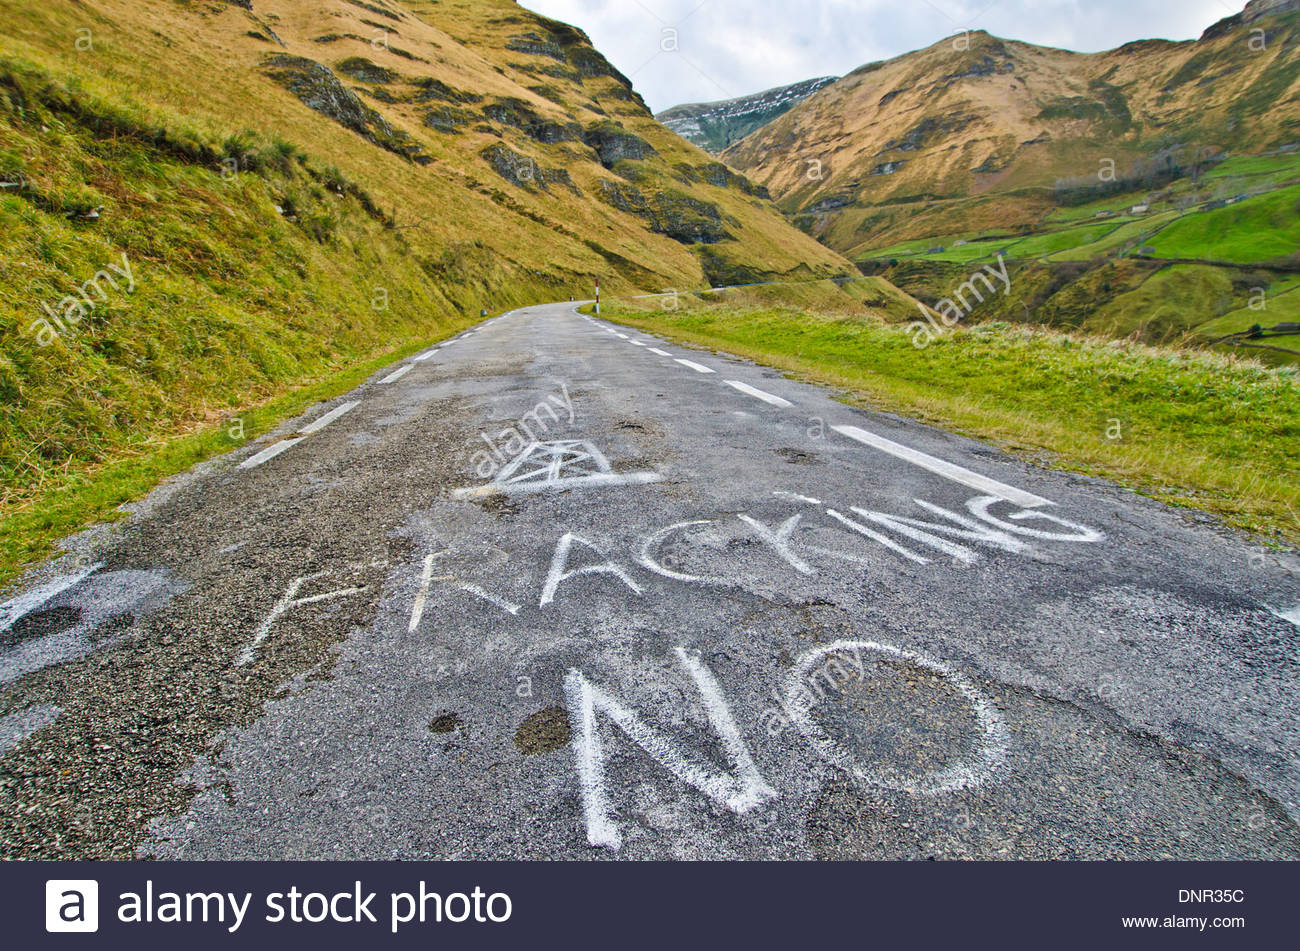 Anti-fracking slogan 'No to fracking' spraypainted on a mountain road in the Cantabrian mountains near the - Stock Image